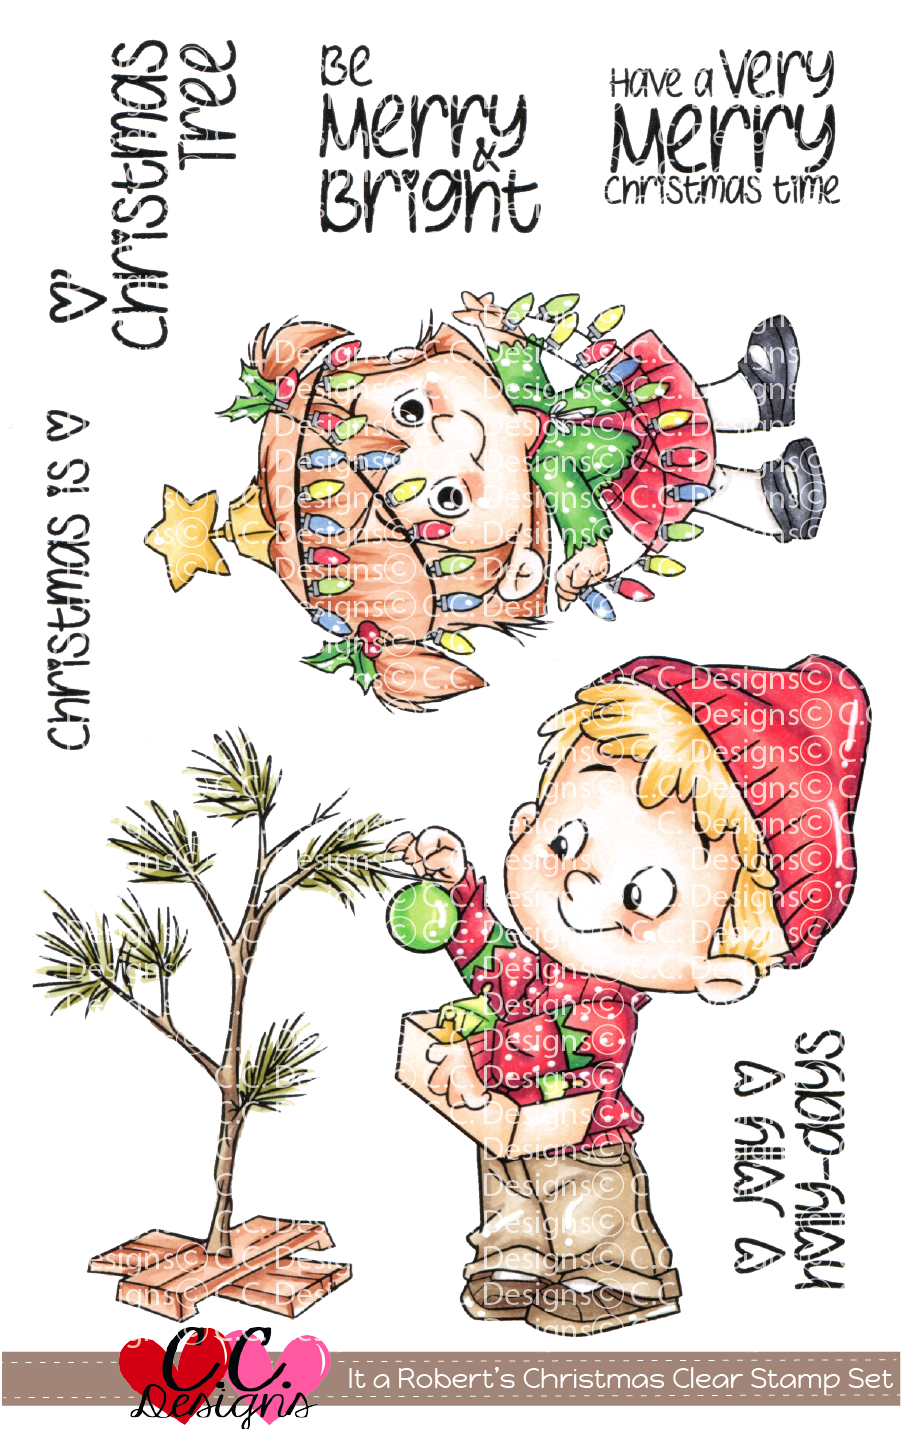 *PRE-ORDER* - CC Designs - It's a Roberto's Christmas Clear Set